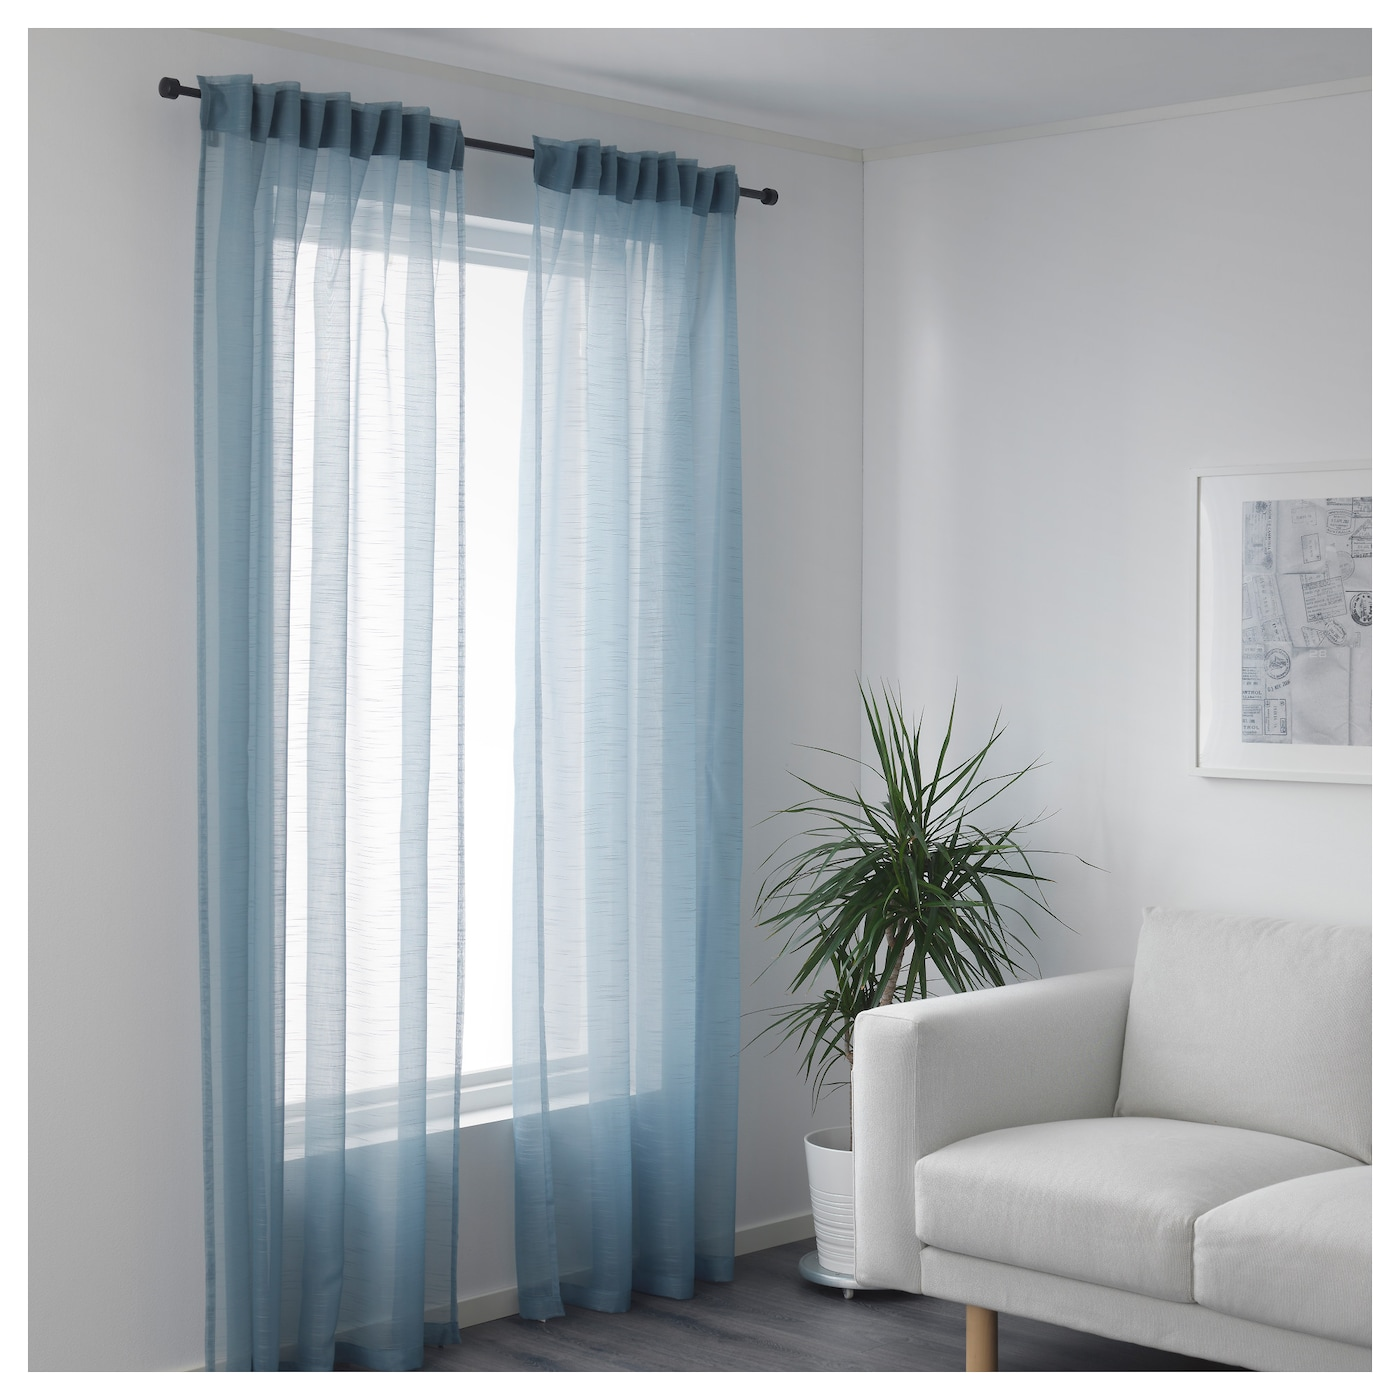 blue curtains walmart ombre long at full panel essence pair of image sheer inspirations semi awesome outdoor size grommet curtain panels